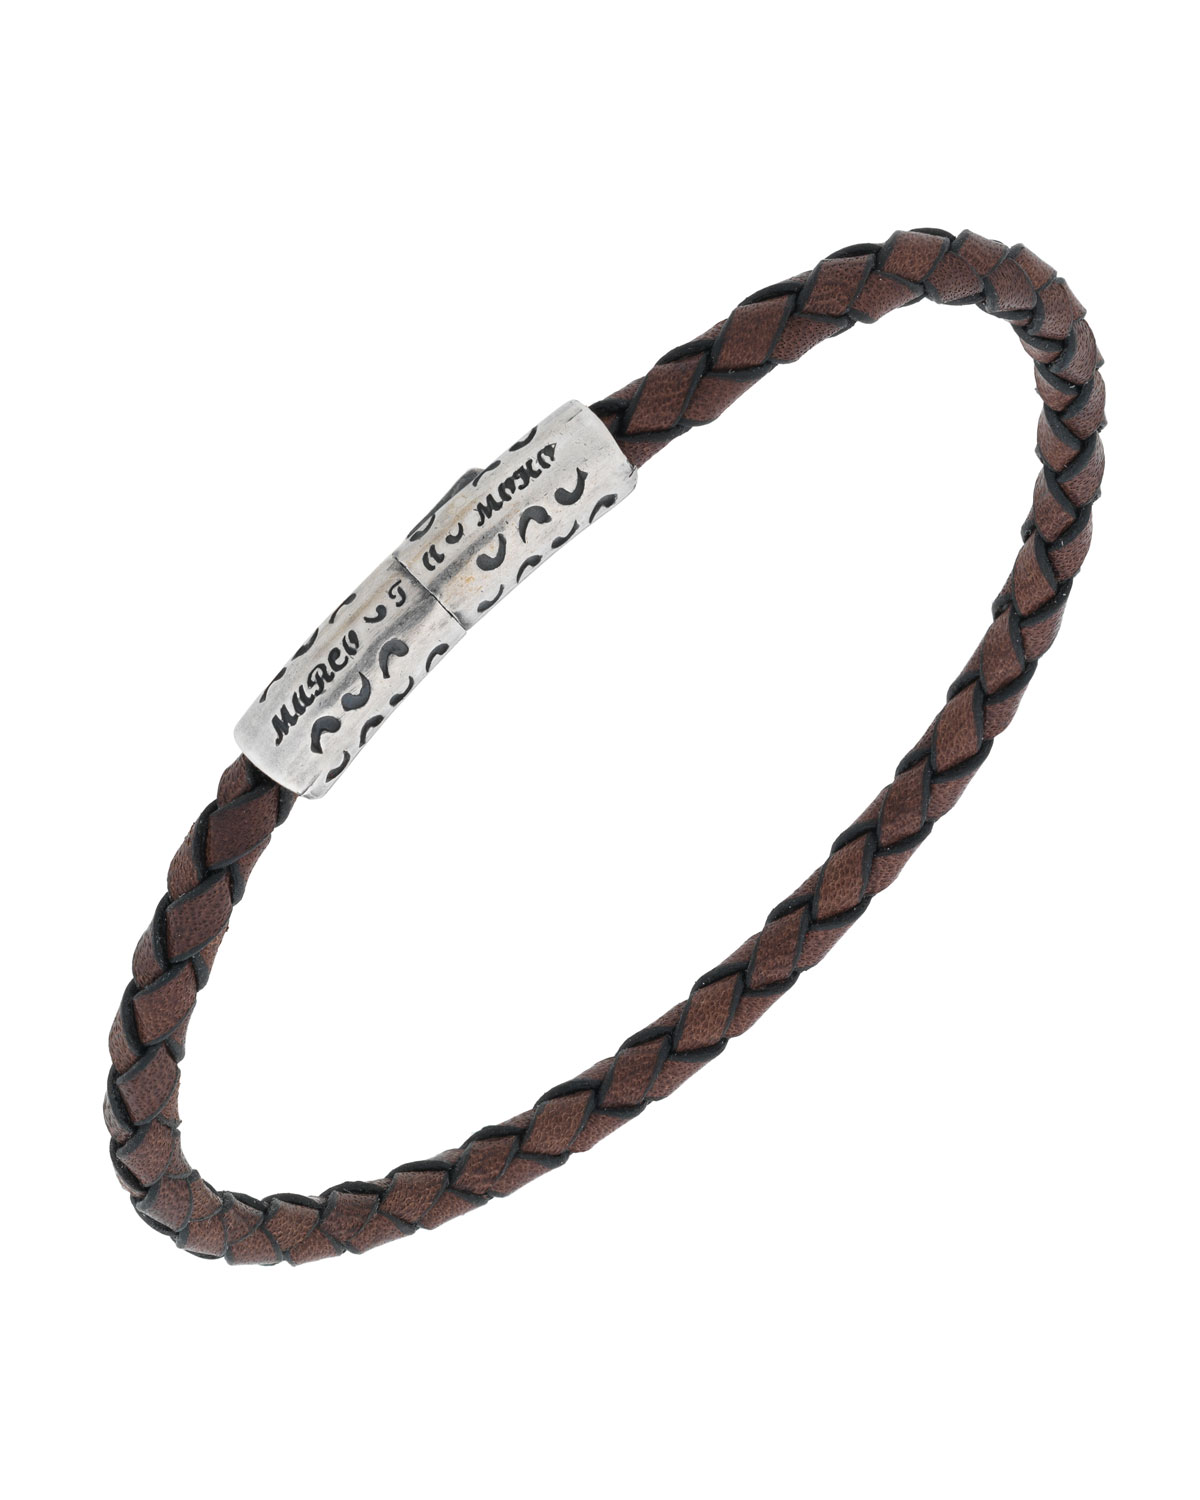 MARCO DAL MASO MEN'S THIN WOVEN LEATHER BRACELET, BROWN